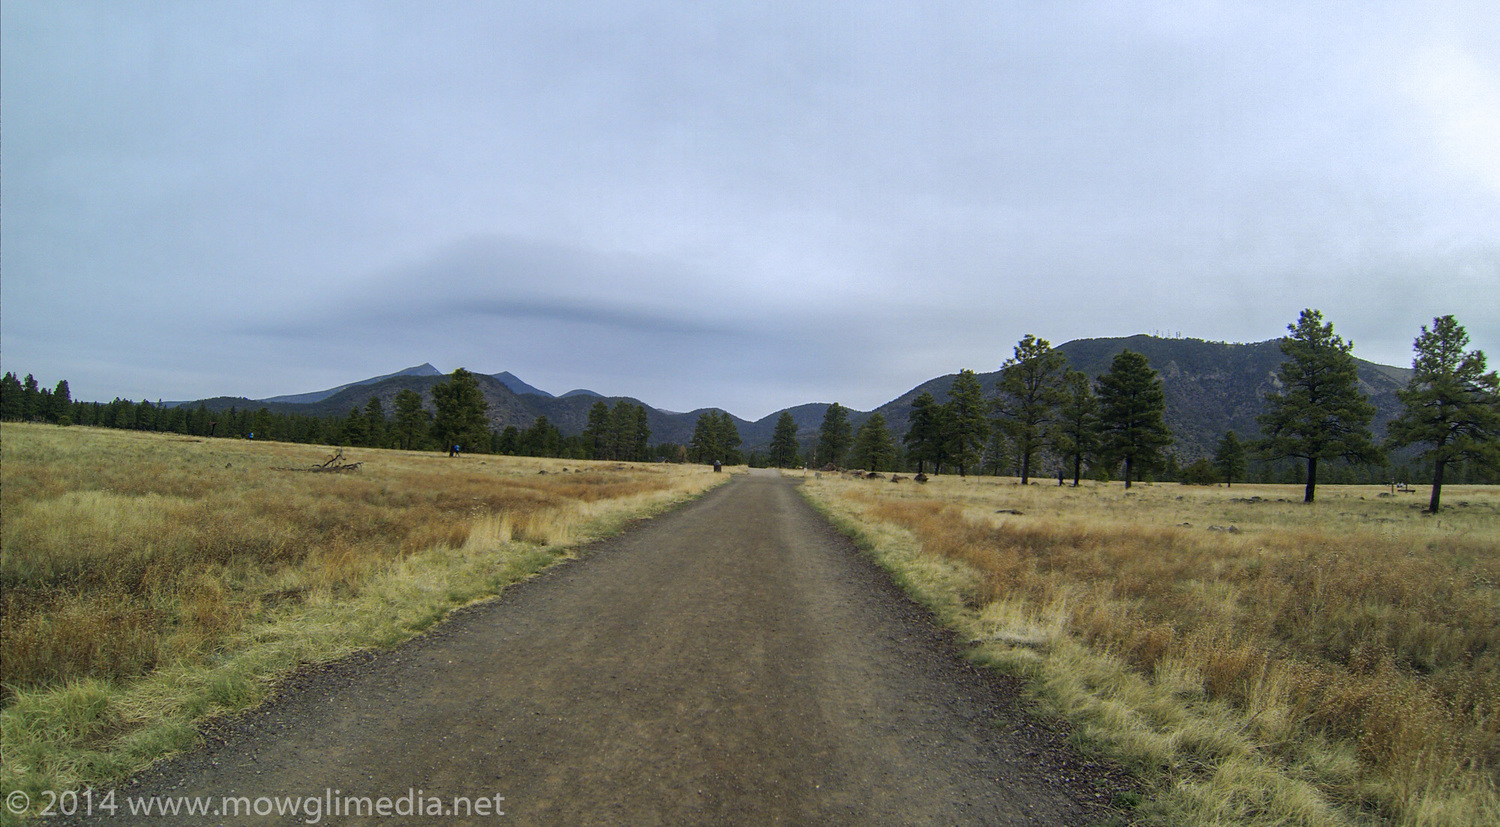 Heading out of Flagstaff, towards Humphreys Peak